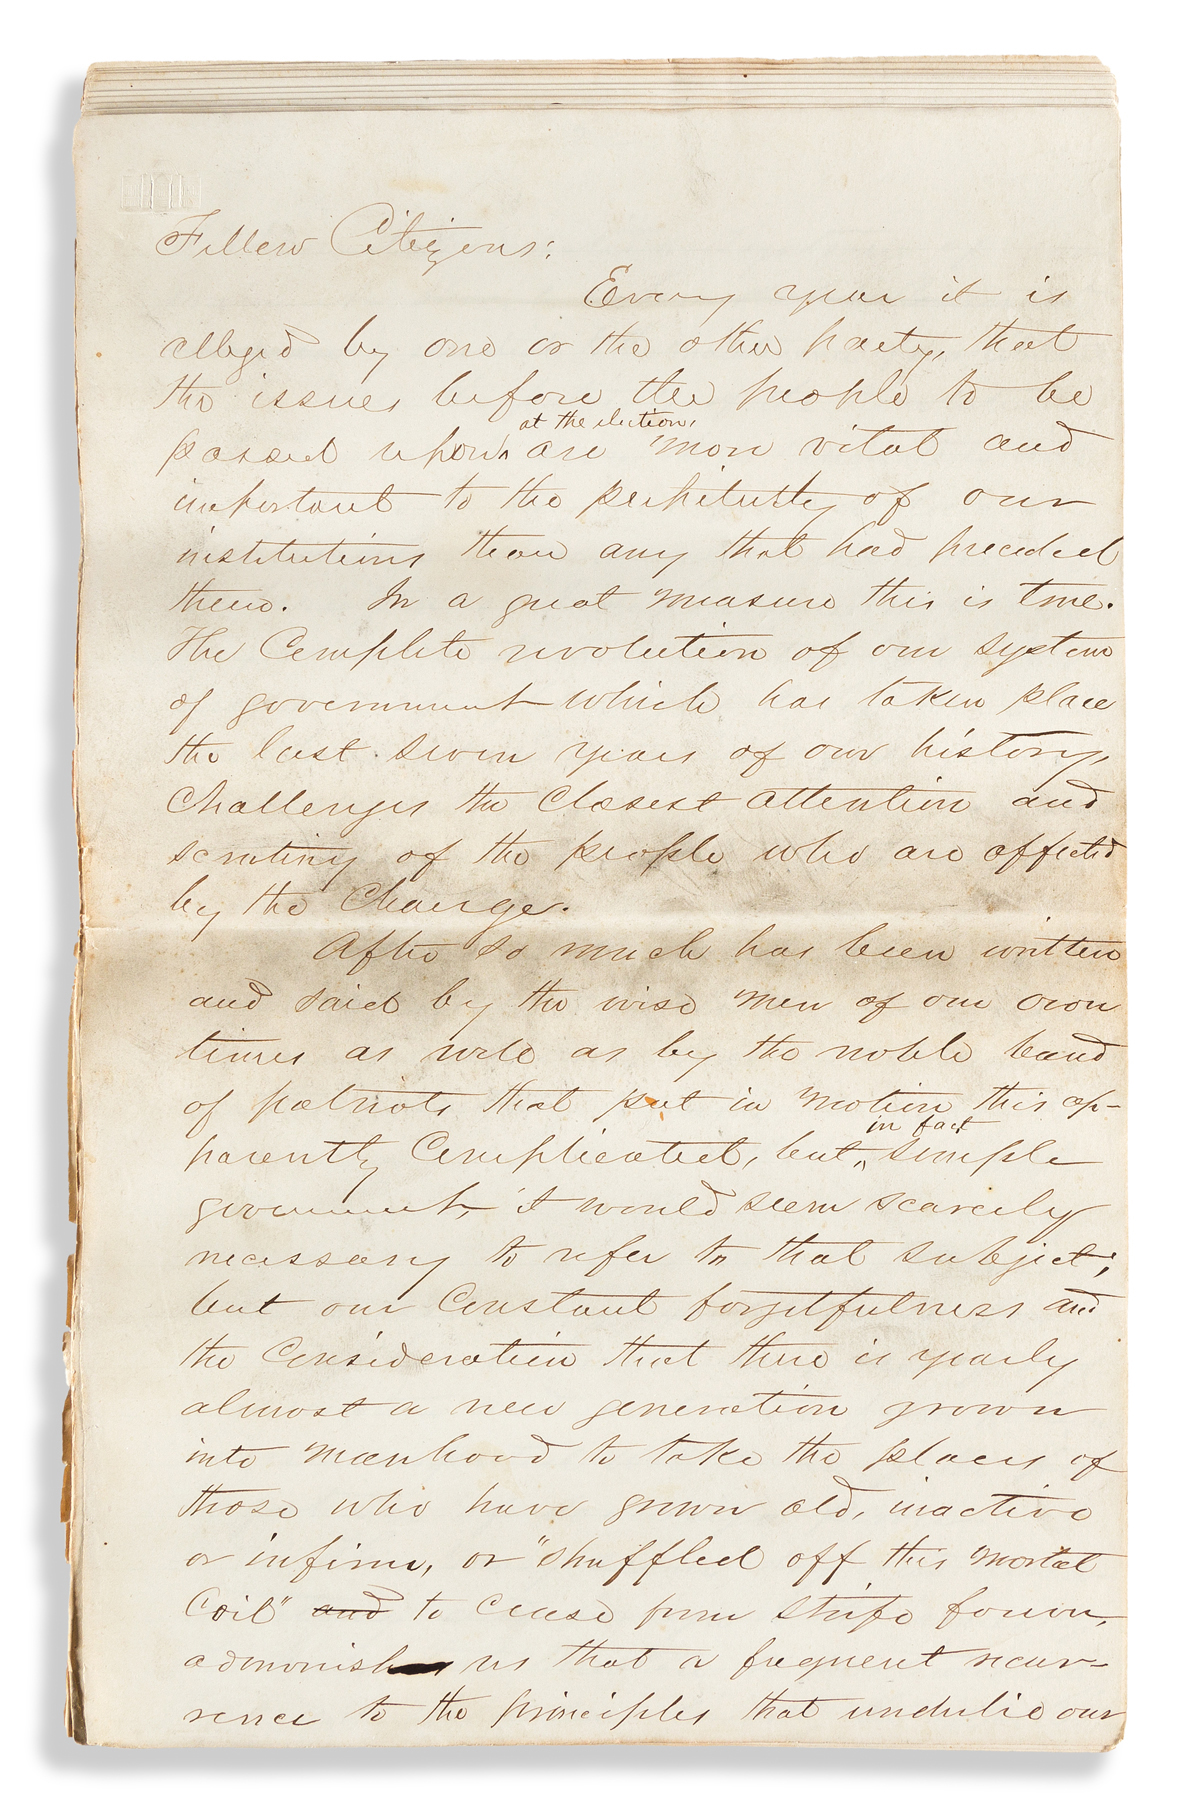 (PRESIDENTS--1868 CAMPAIGN.) Manuscript oration in support of the Democratic Party ticket delivered in rural Ohio.